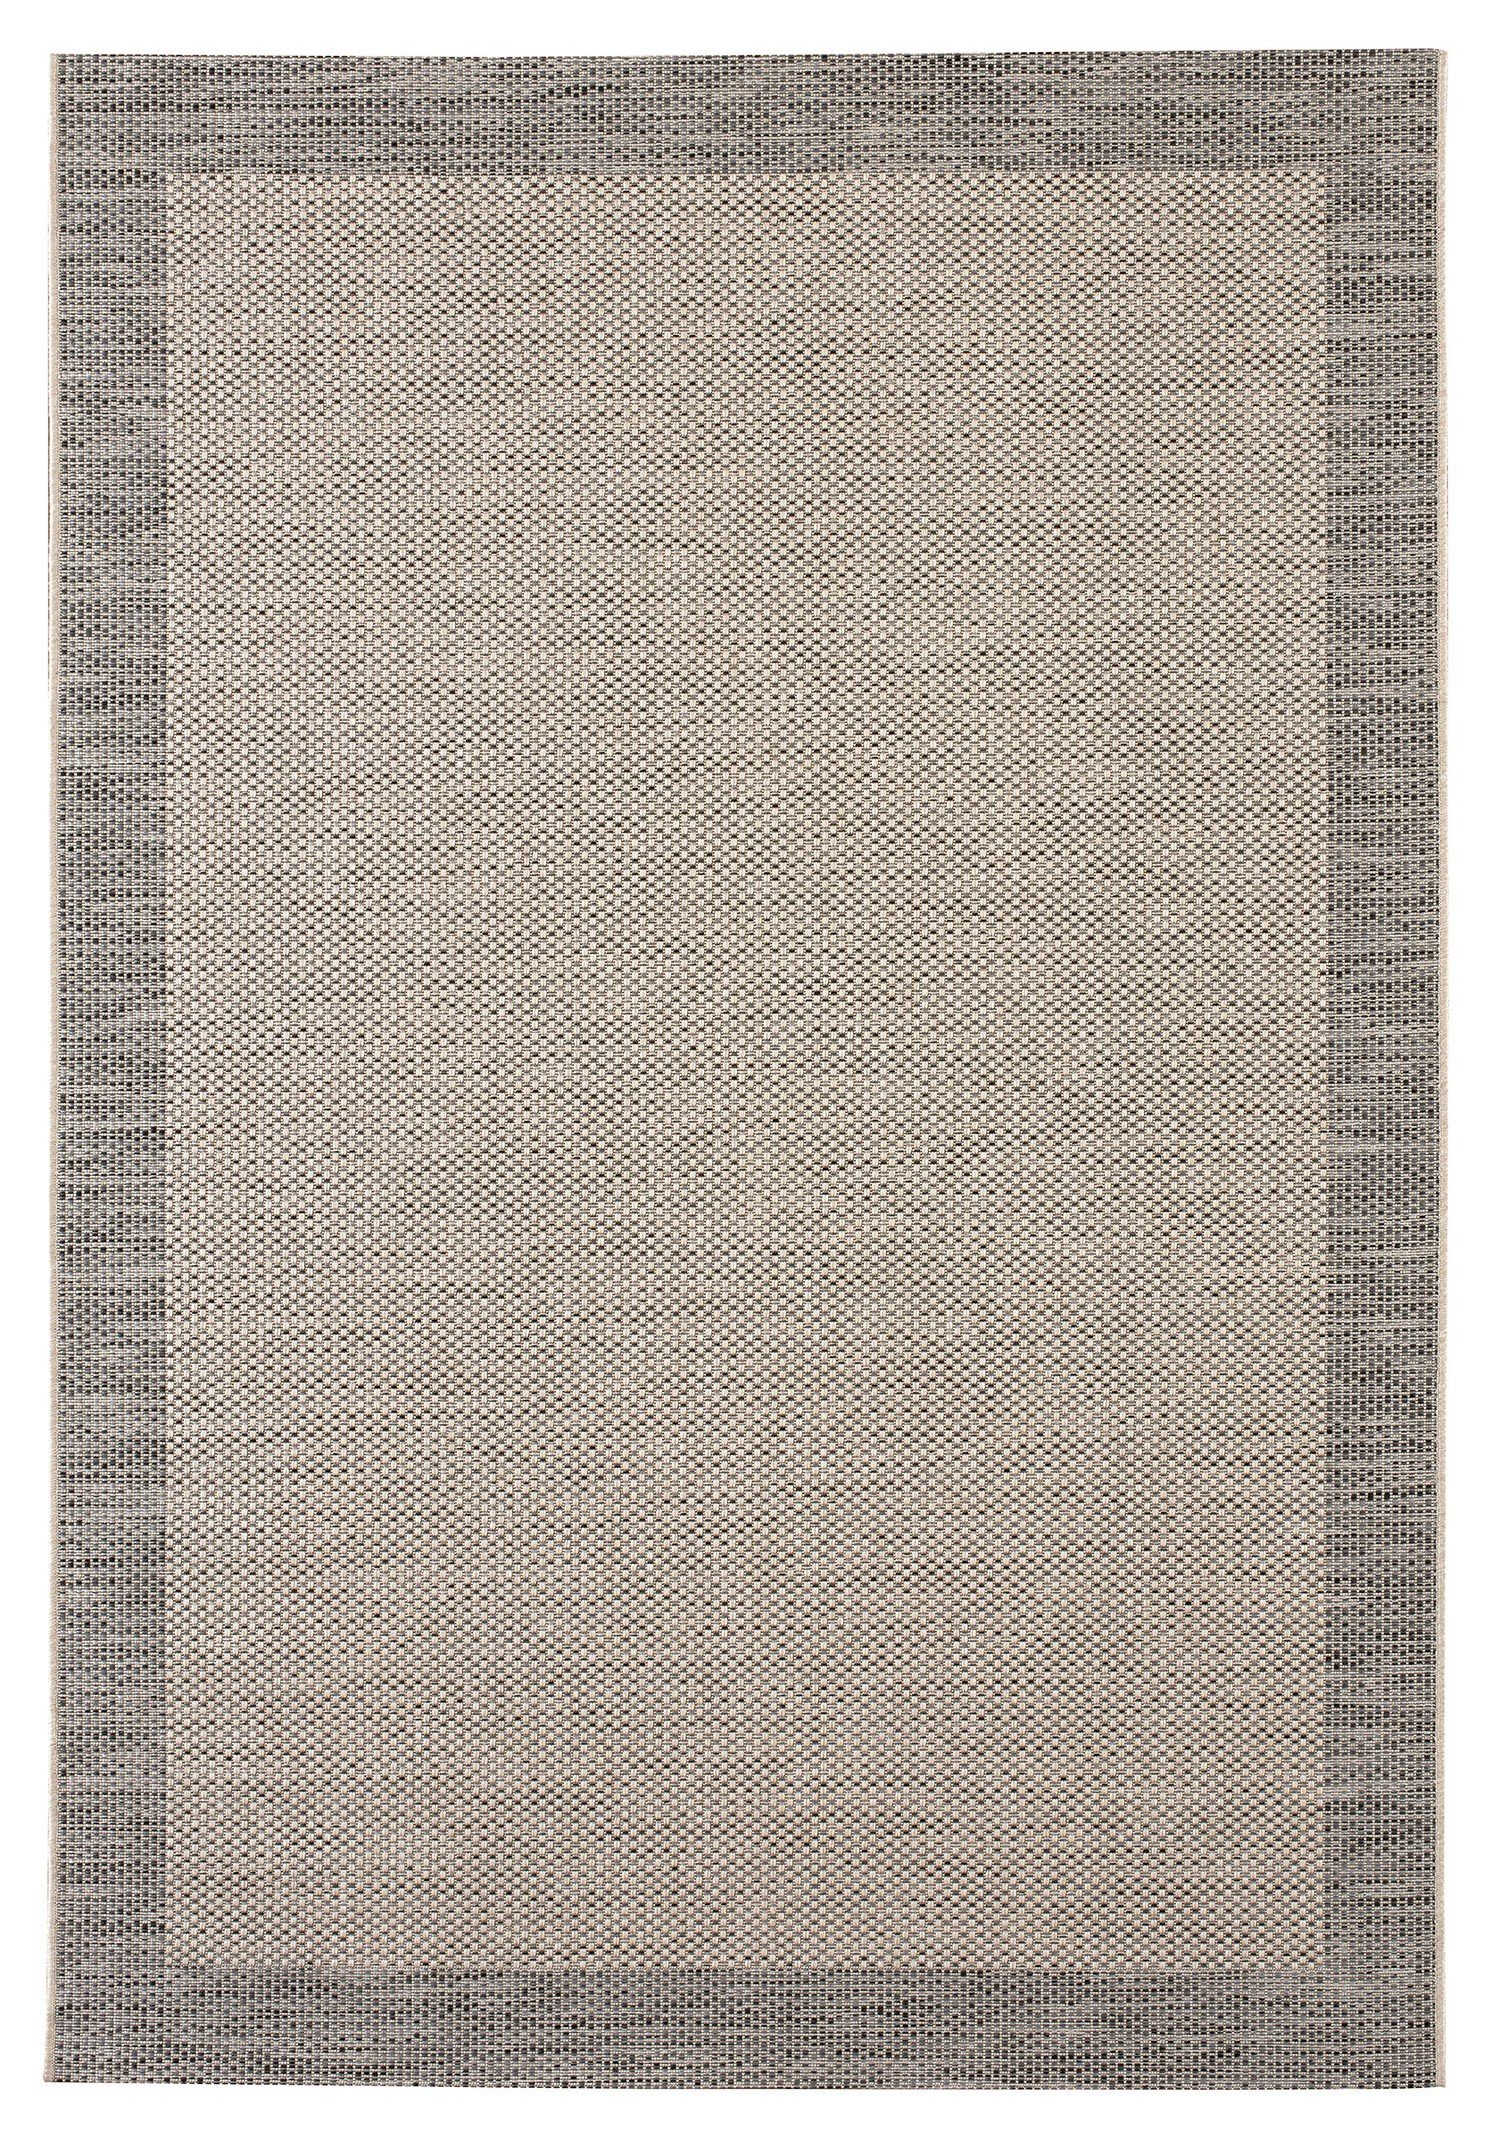 Outdoor Rugs For Porches Amazon Com